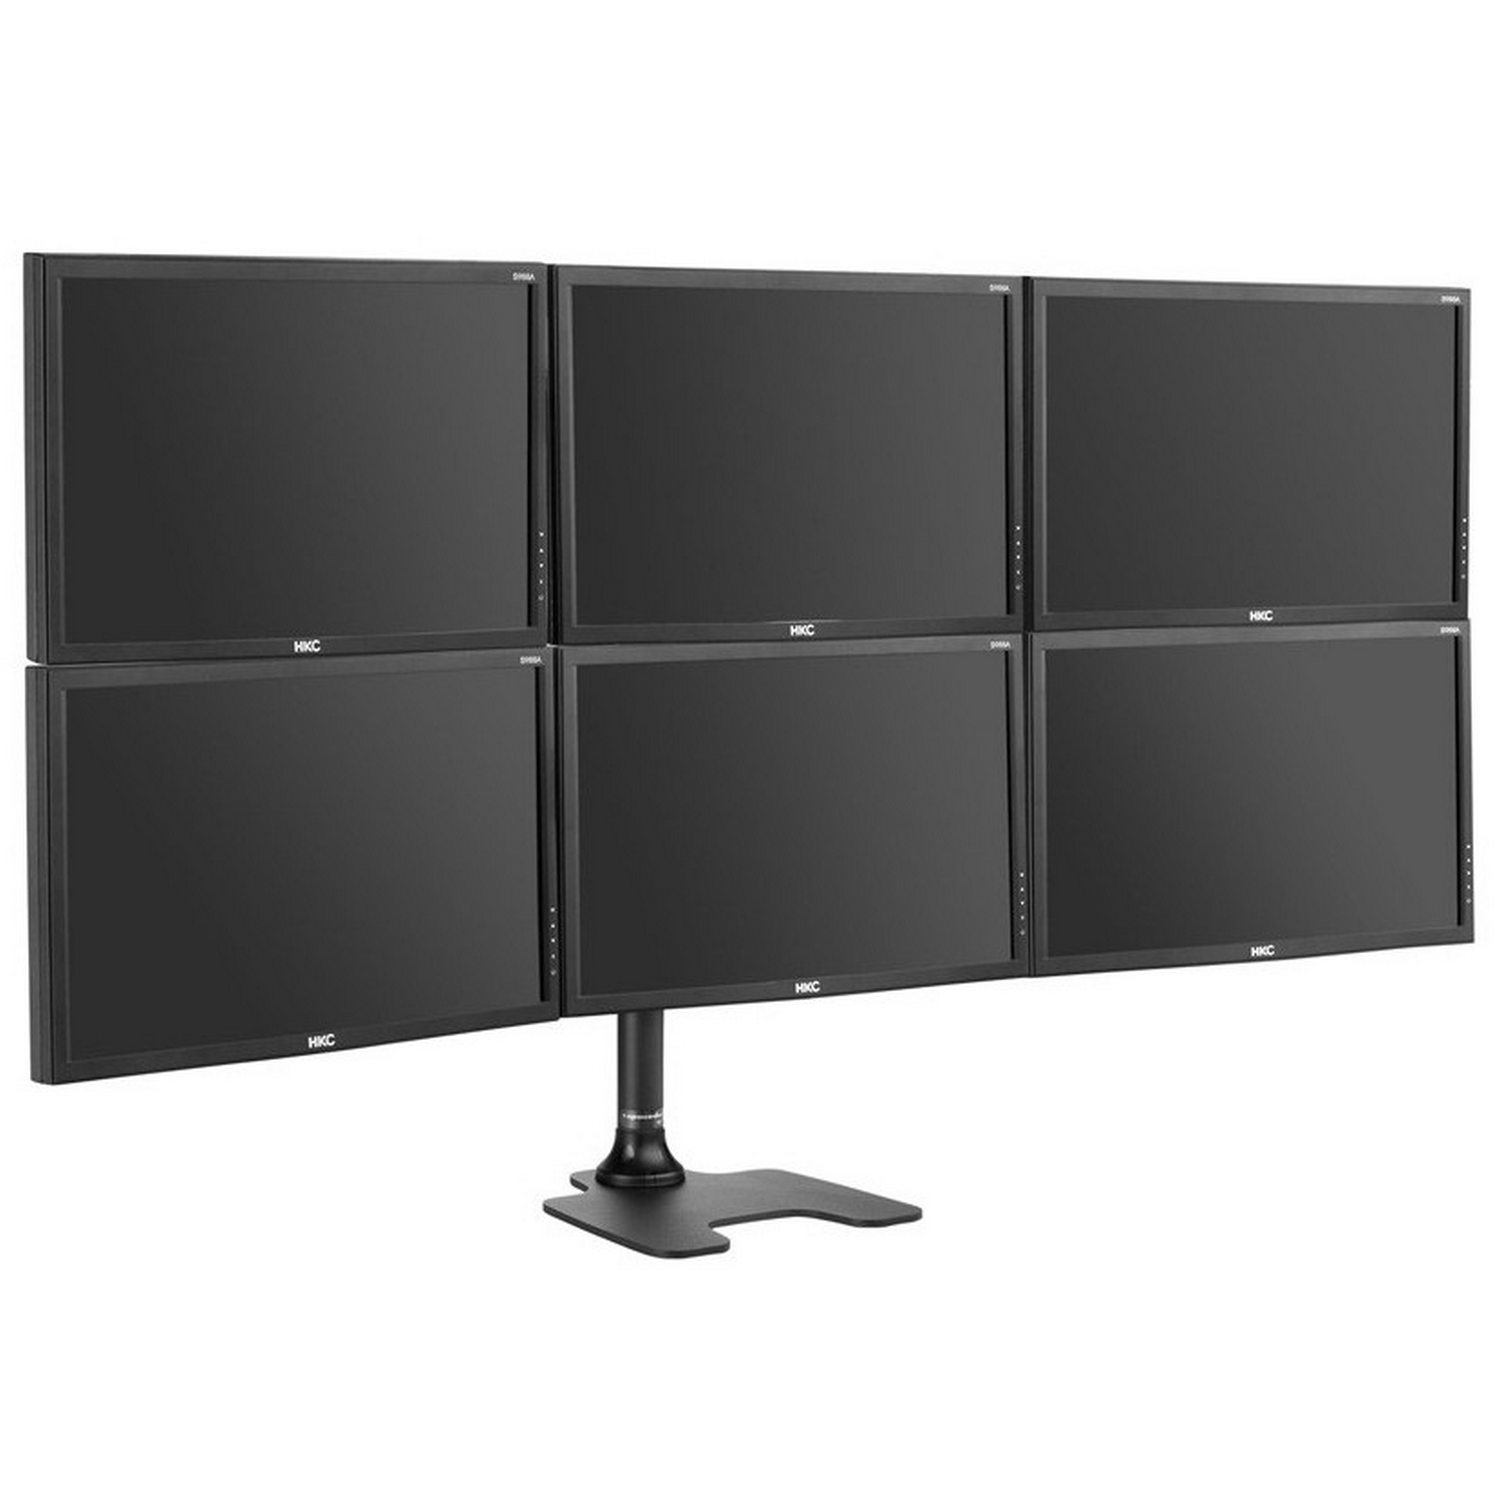 Six display desk mount